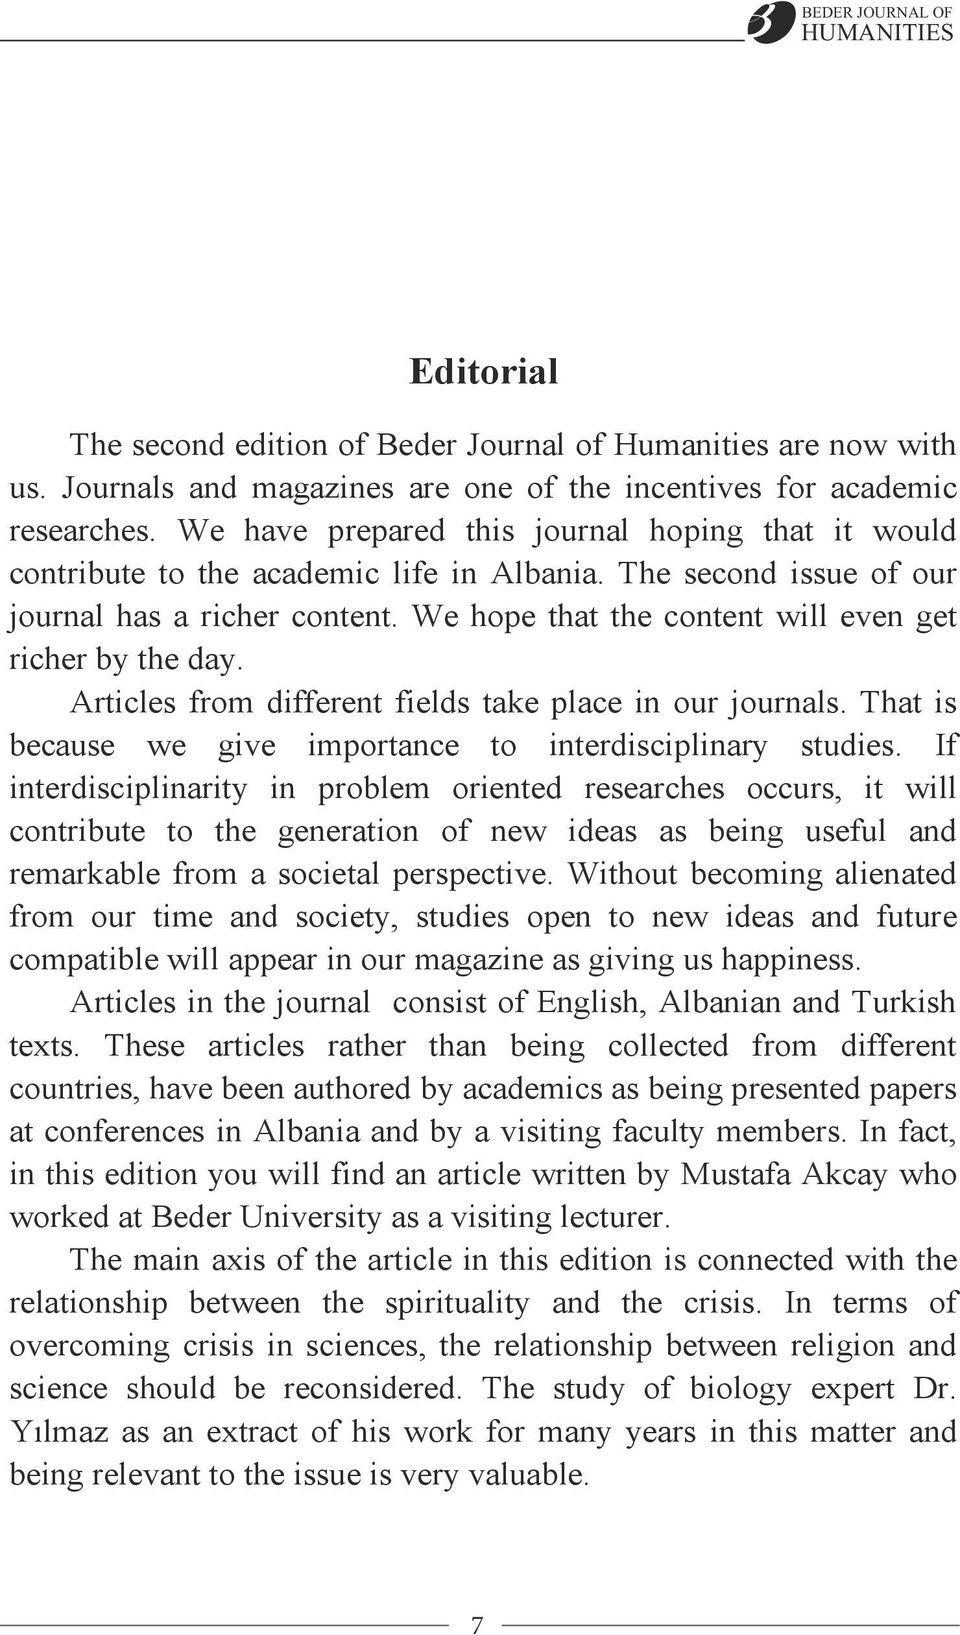 We hope that the content will even get richer by the day. Articles from different fields take place in our journals. That is because we give importance to interdisciplinary studies.